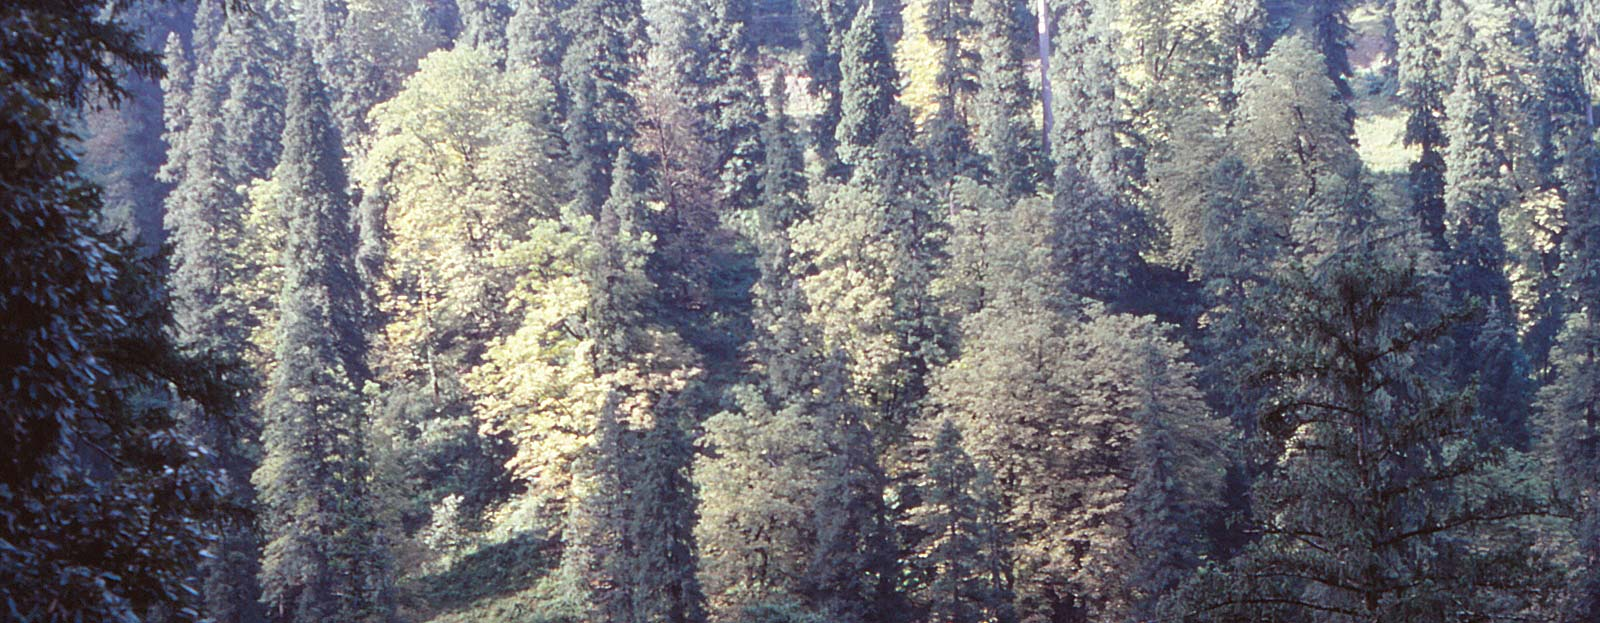 Himalayan oak forests